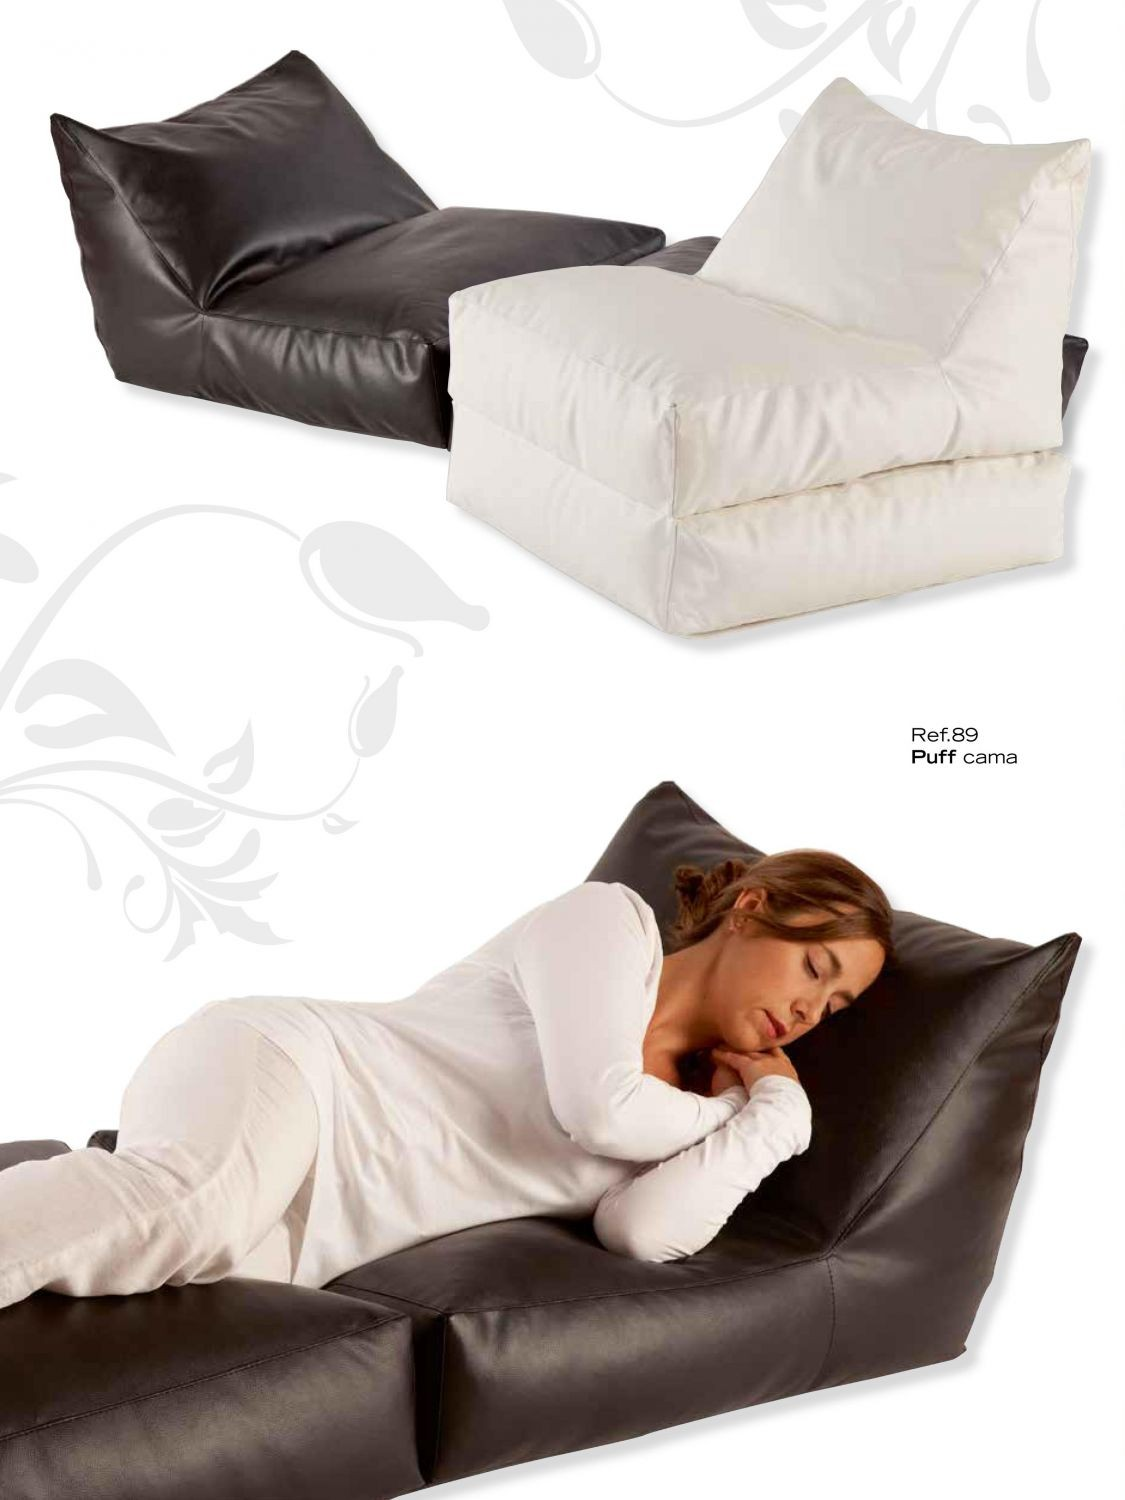 Puff cama tapizado 956 89 for Puff cama 1 plaza